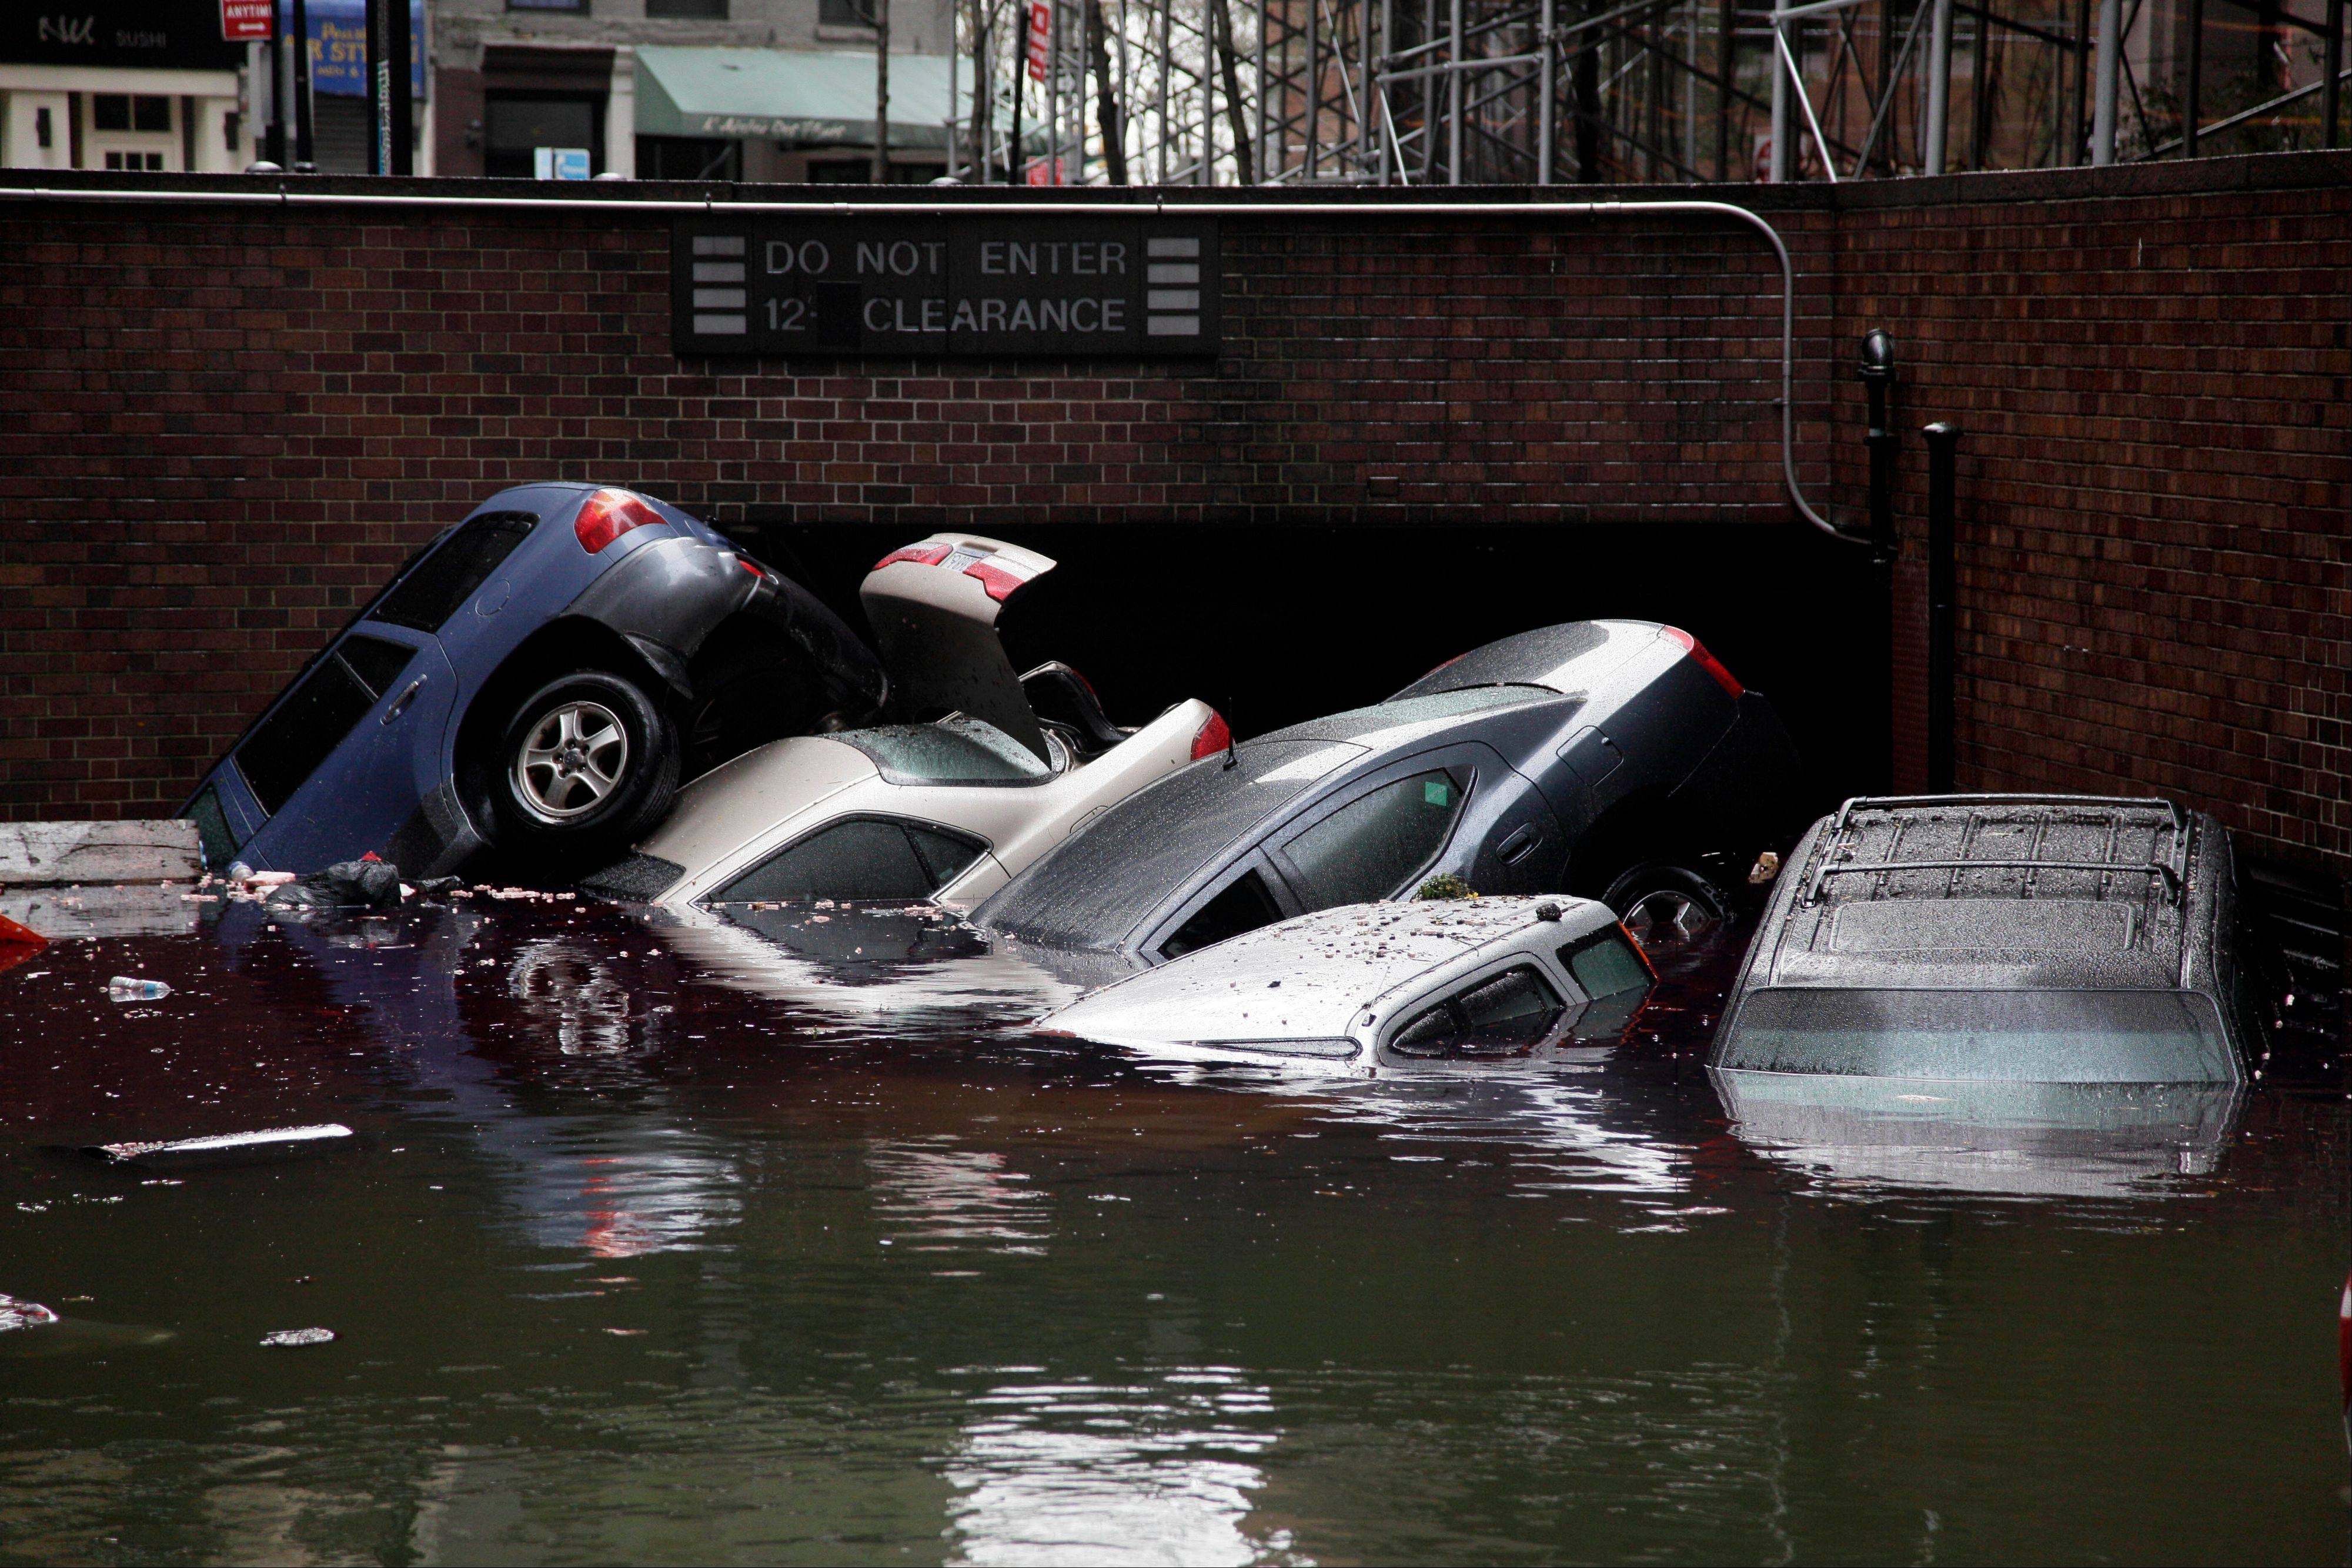 Cars are submerged at the entrance to a parking garage in New York's Financial District in the aftermath of superstorm Sandy. Alarming claims that hundreds of thousands of flood-damaged cars from Superstorm Sandy will inundate the used car market arenít backed up by insurance company claim data, The Associated Press has found. The dire predictions come mostly from companies that track vehicle title and repair histories and sell those reports.